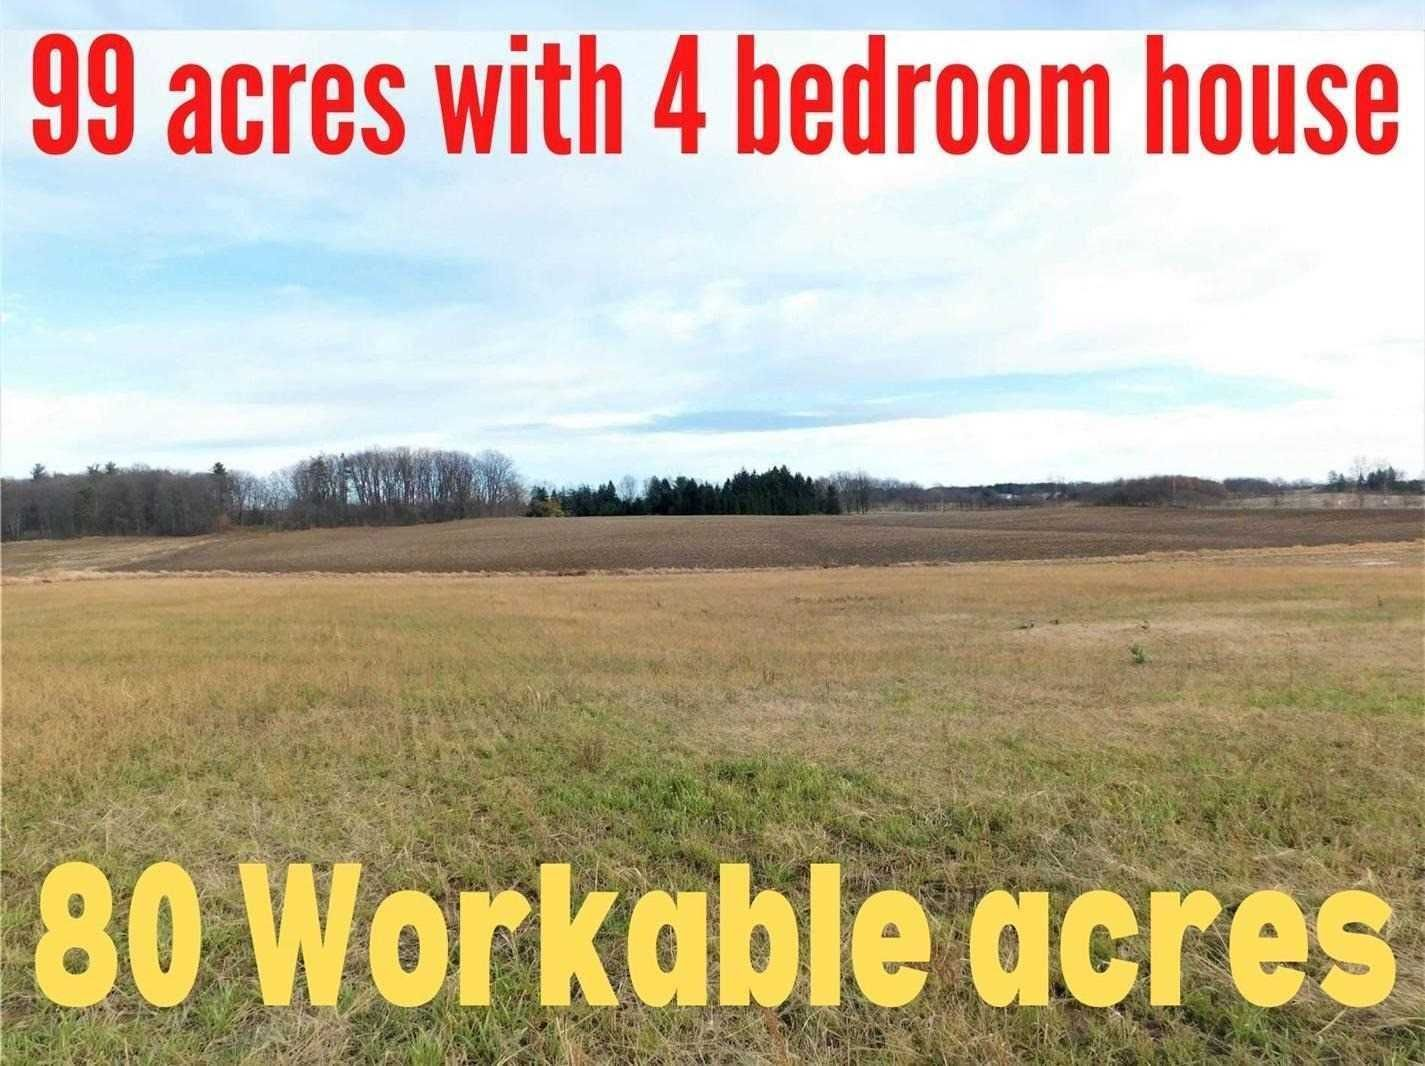 Main Photo: 15886 Centreville Creek Road in Caledon: Rural Caledon House (2-Storey) for sale : MLS®# W5310399